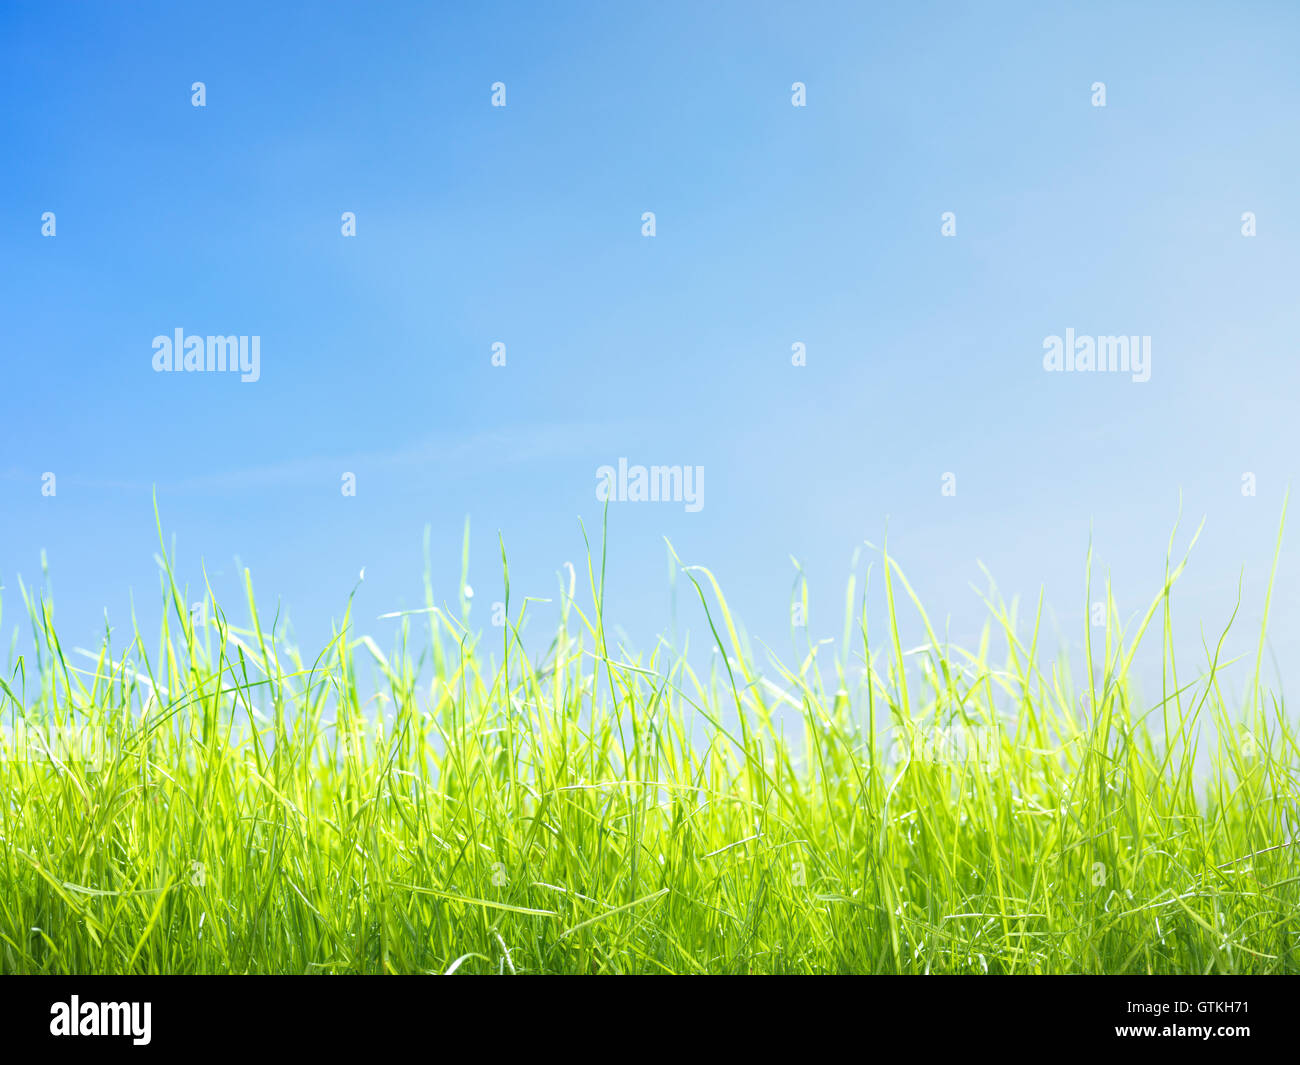 Closeup of young green lawn grass growing under bright blue sunny sky - Stock Image